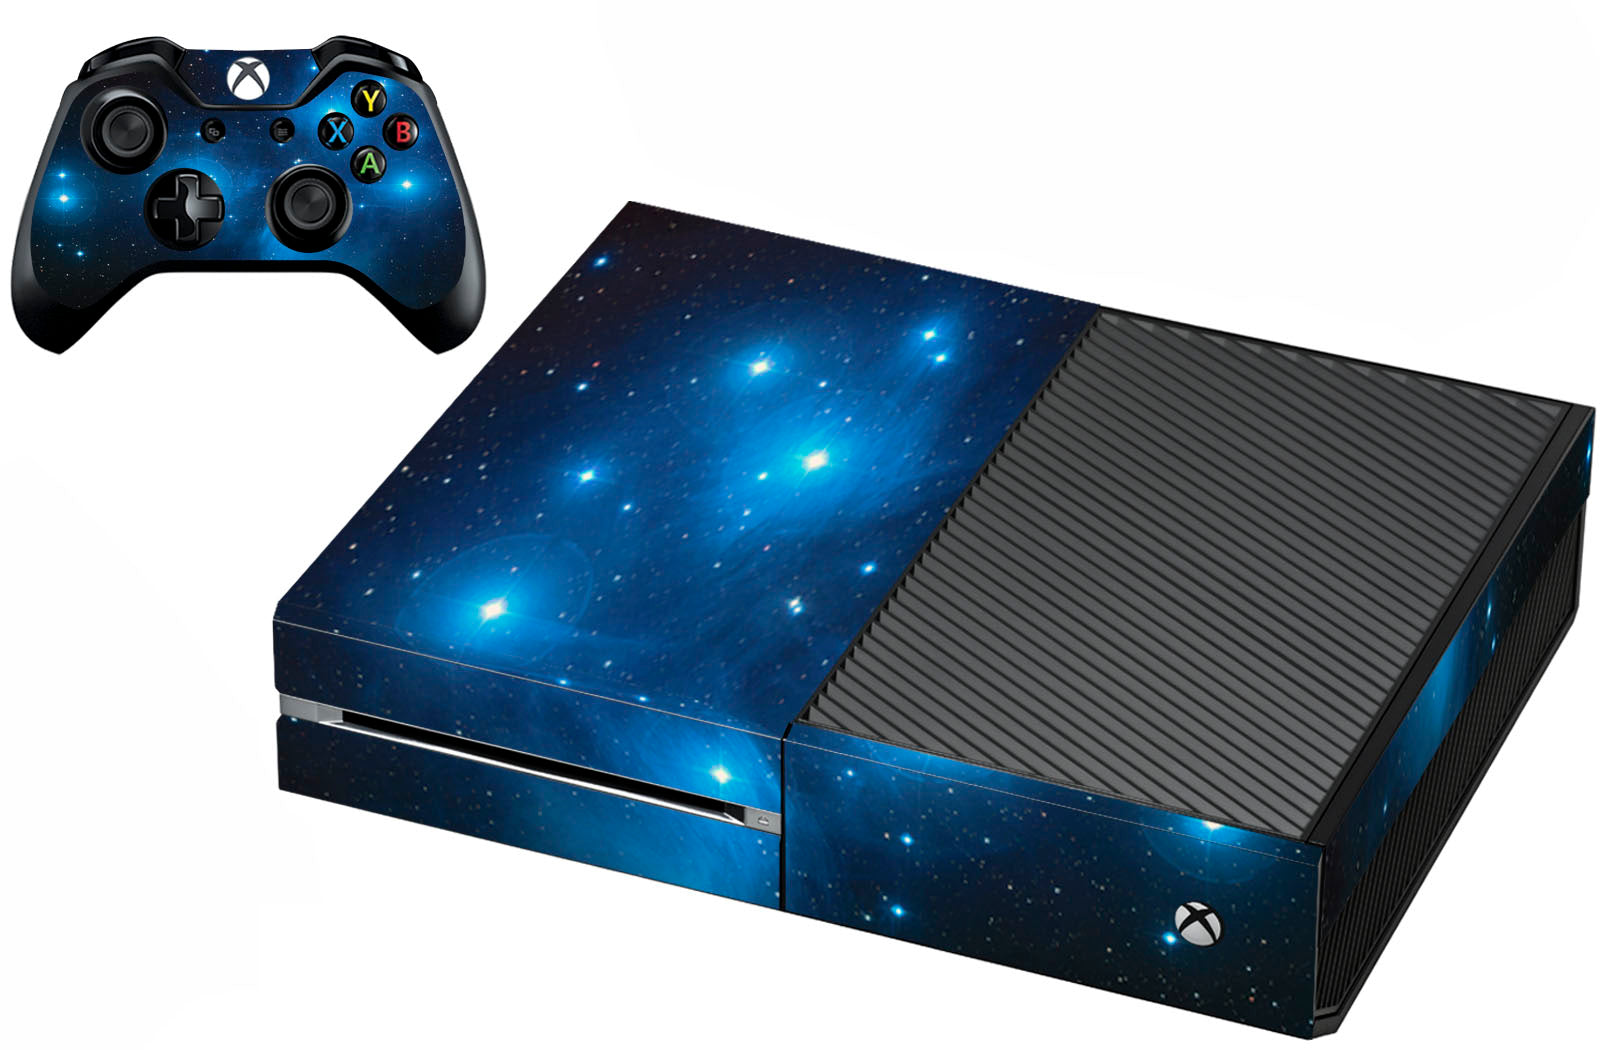 VWAQ Xbox One Galaxy Skins For Console And Controller Space Skin For Xbox One - XGC1 - VWAQ Vinyl Wall Art Quotes and Prints